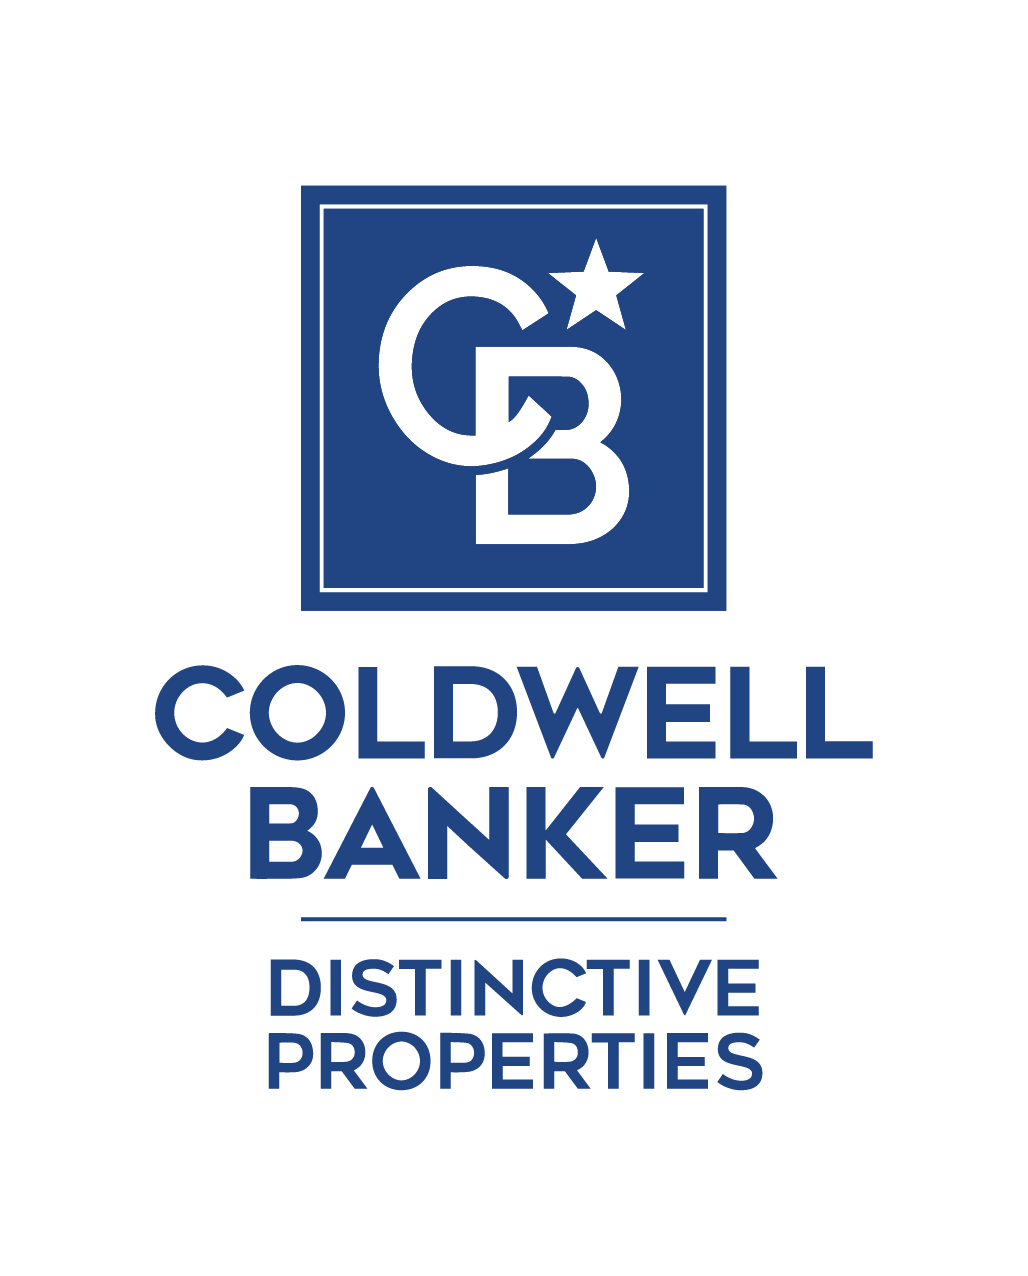 Coldwell Banker Distinctive Properties, Craig - Coldwell Banker Distinctive Properties